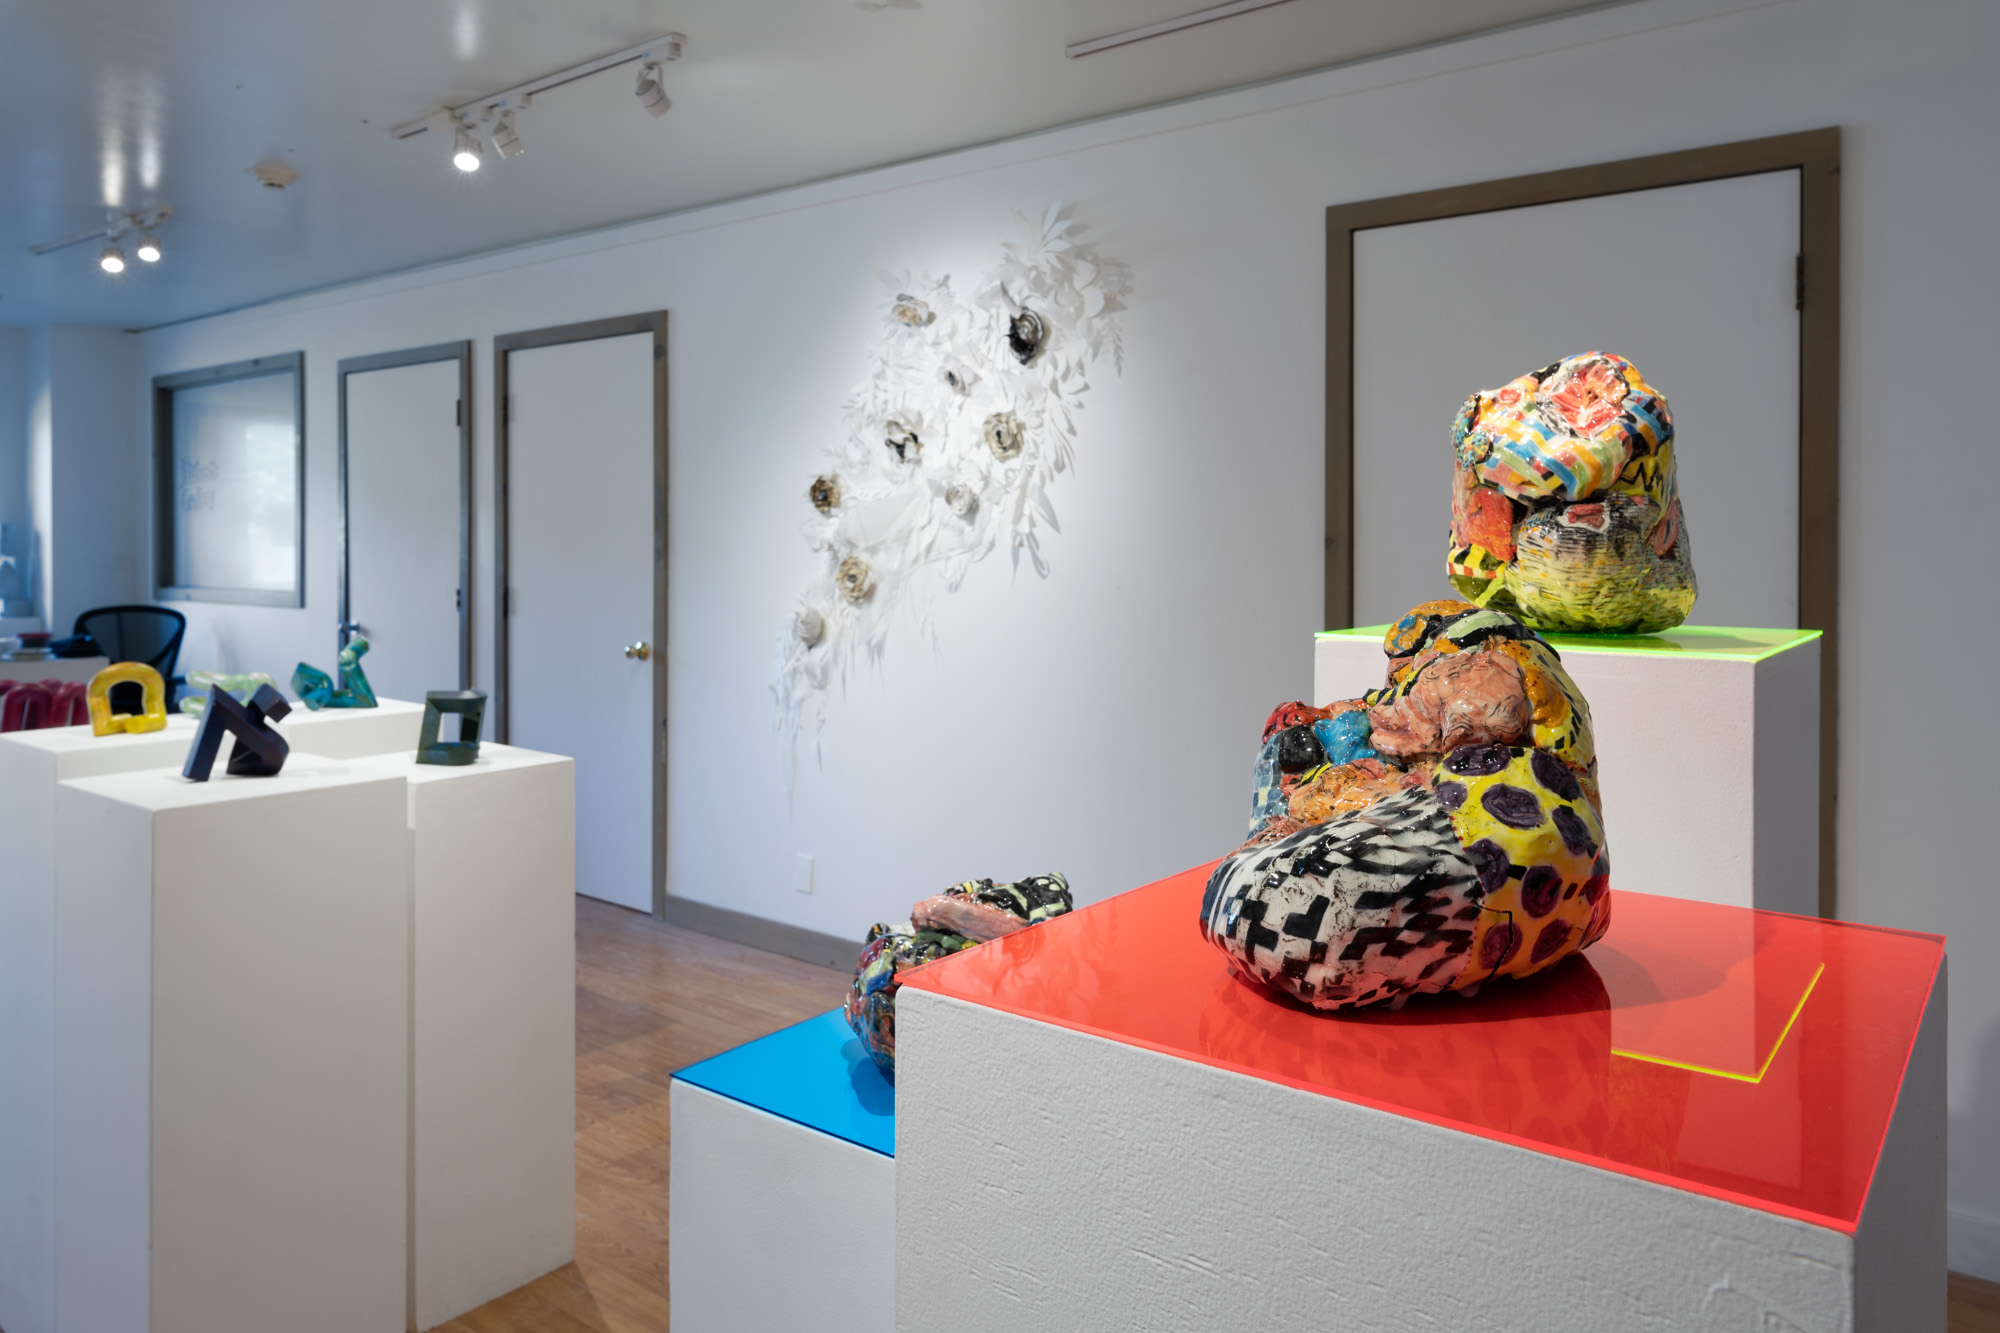 New Ownership (NFT Ceramics) at Eutectic Gallery, 2021